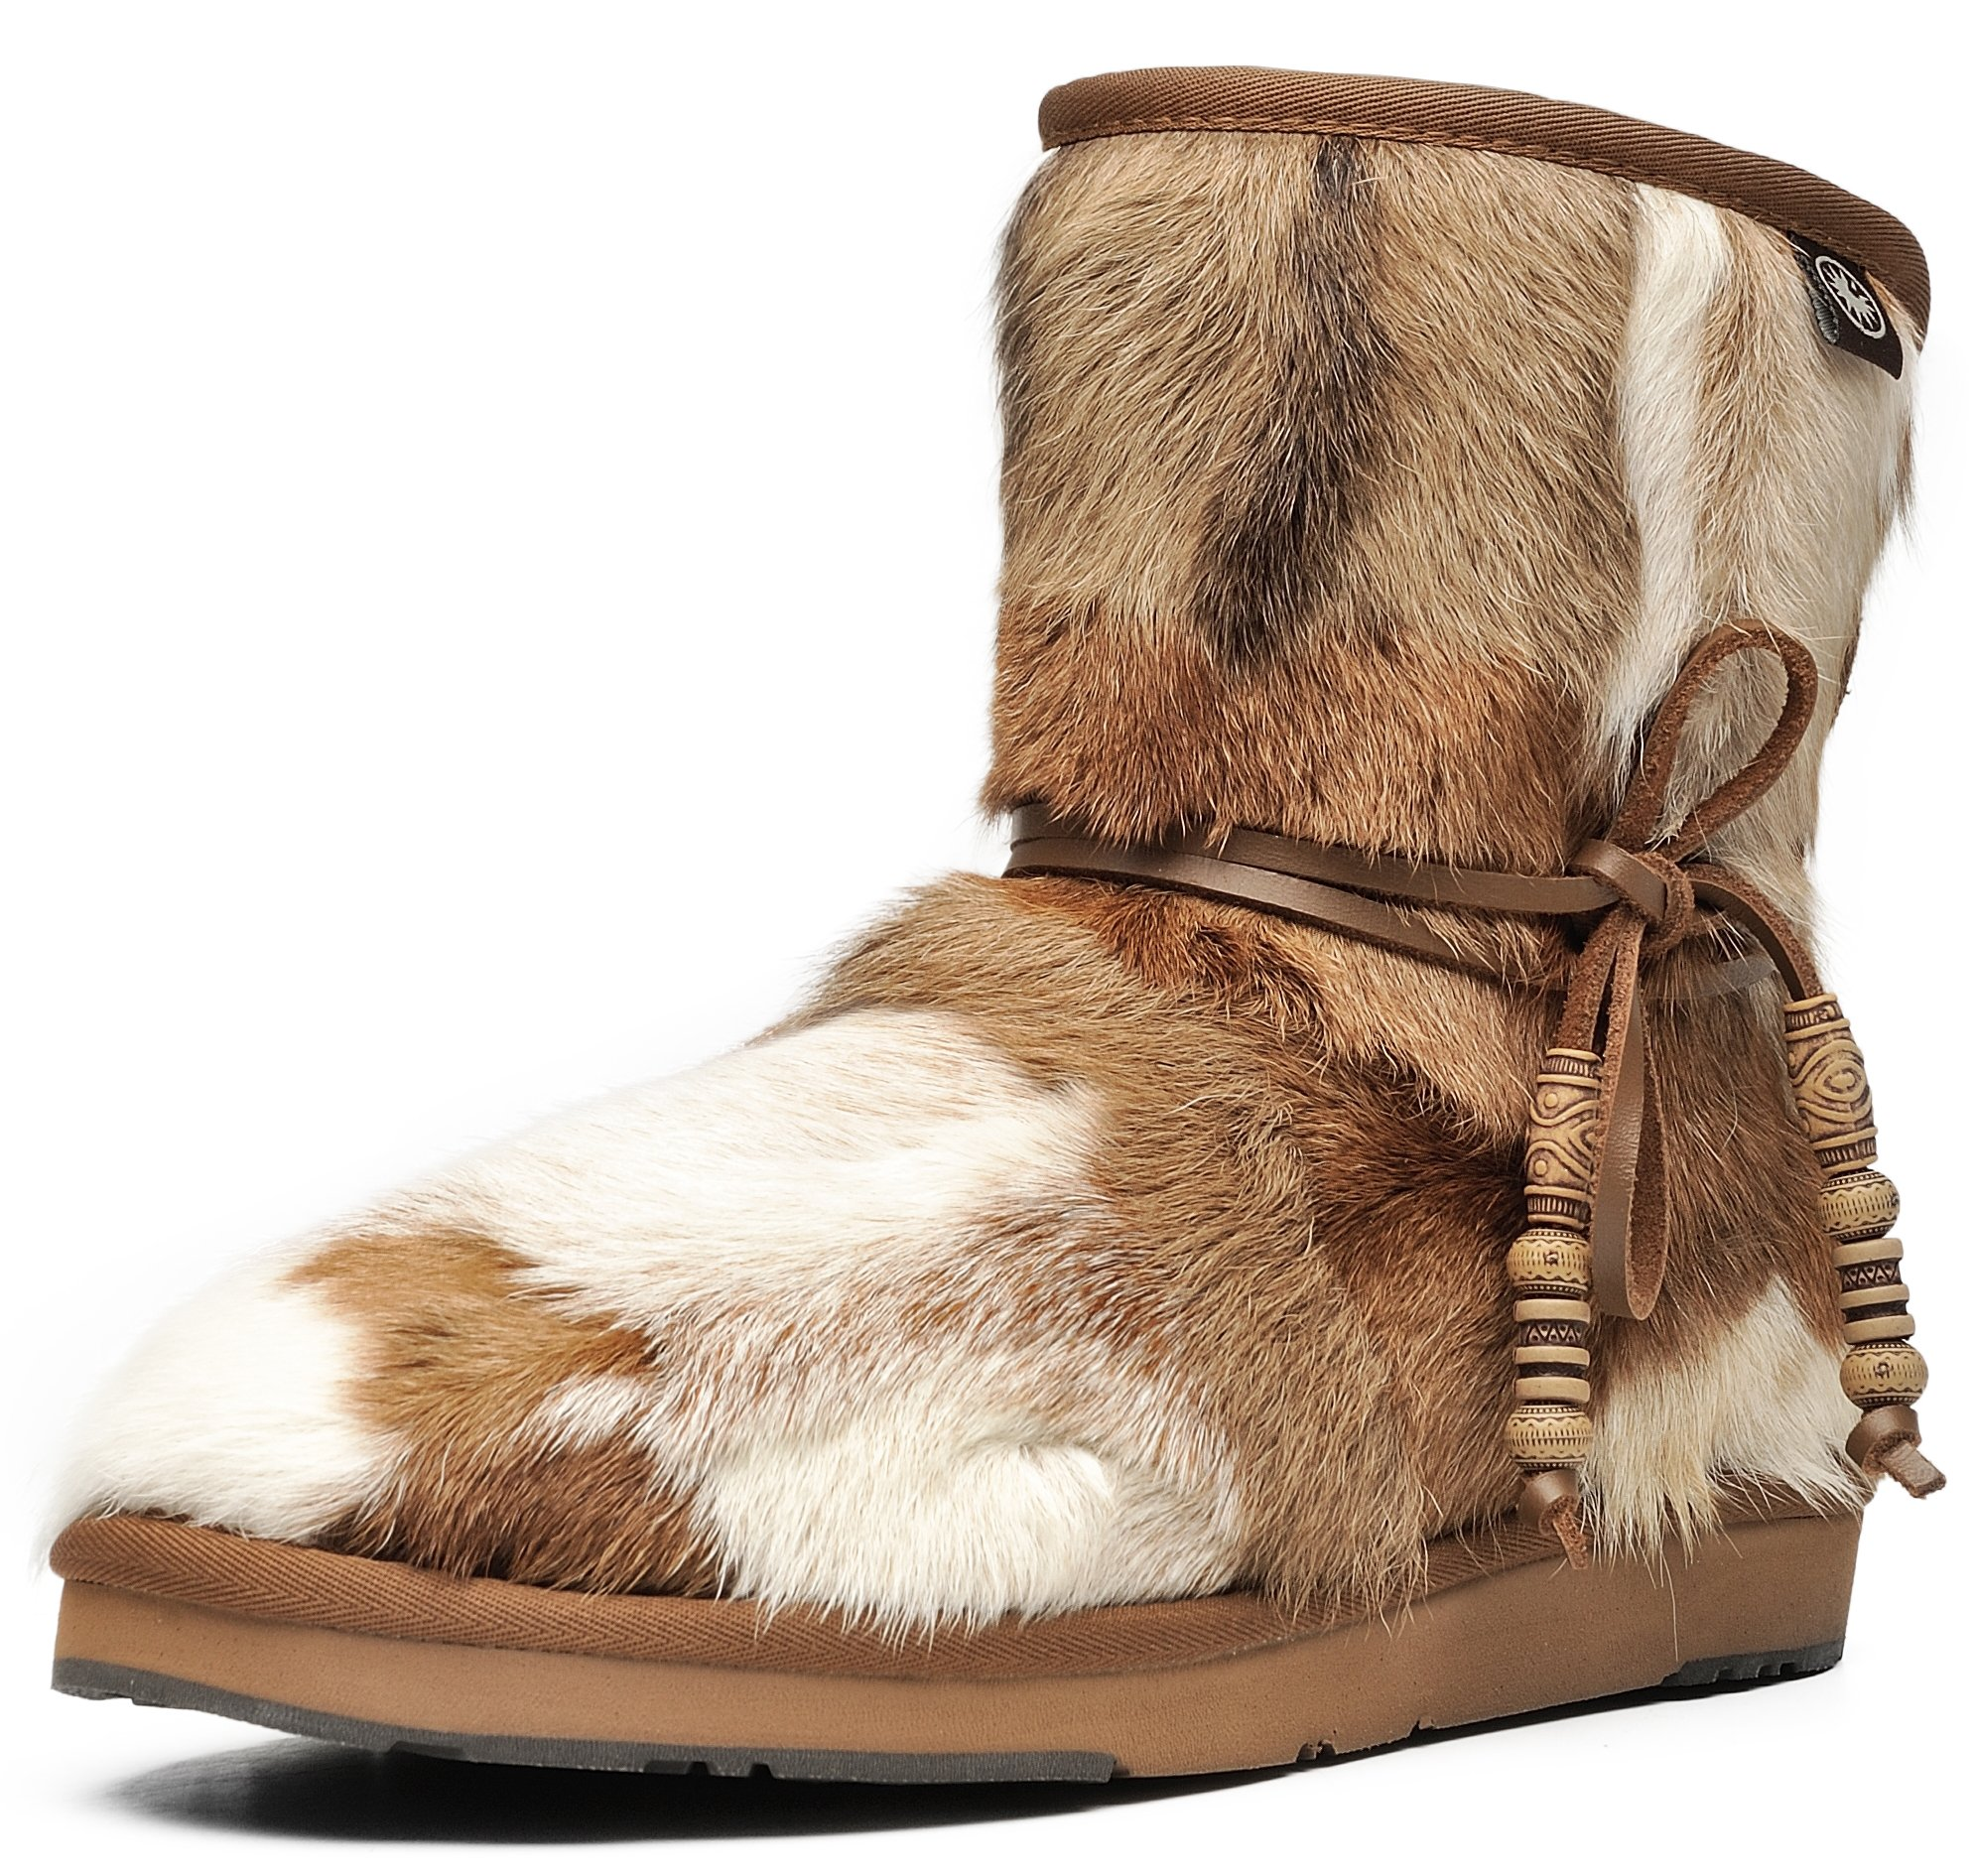 AU&MU AUMU Women's Mini Sheepskin Winter Boots Fur Boots Chestnut Size 8